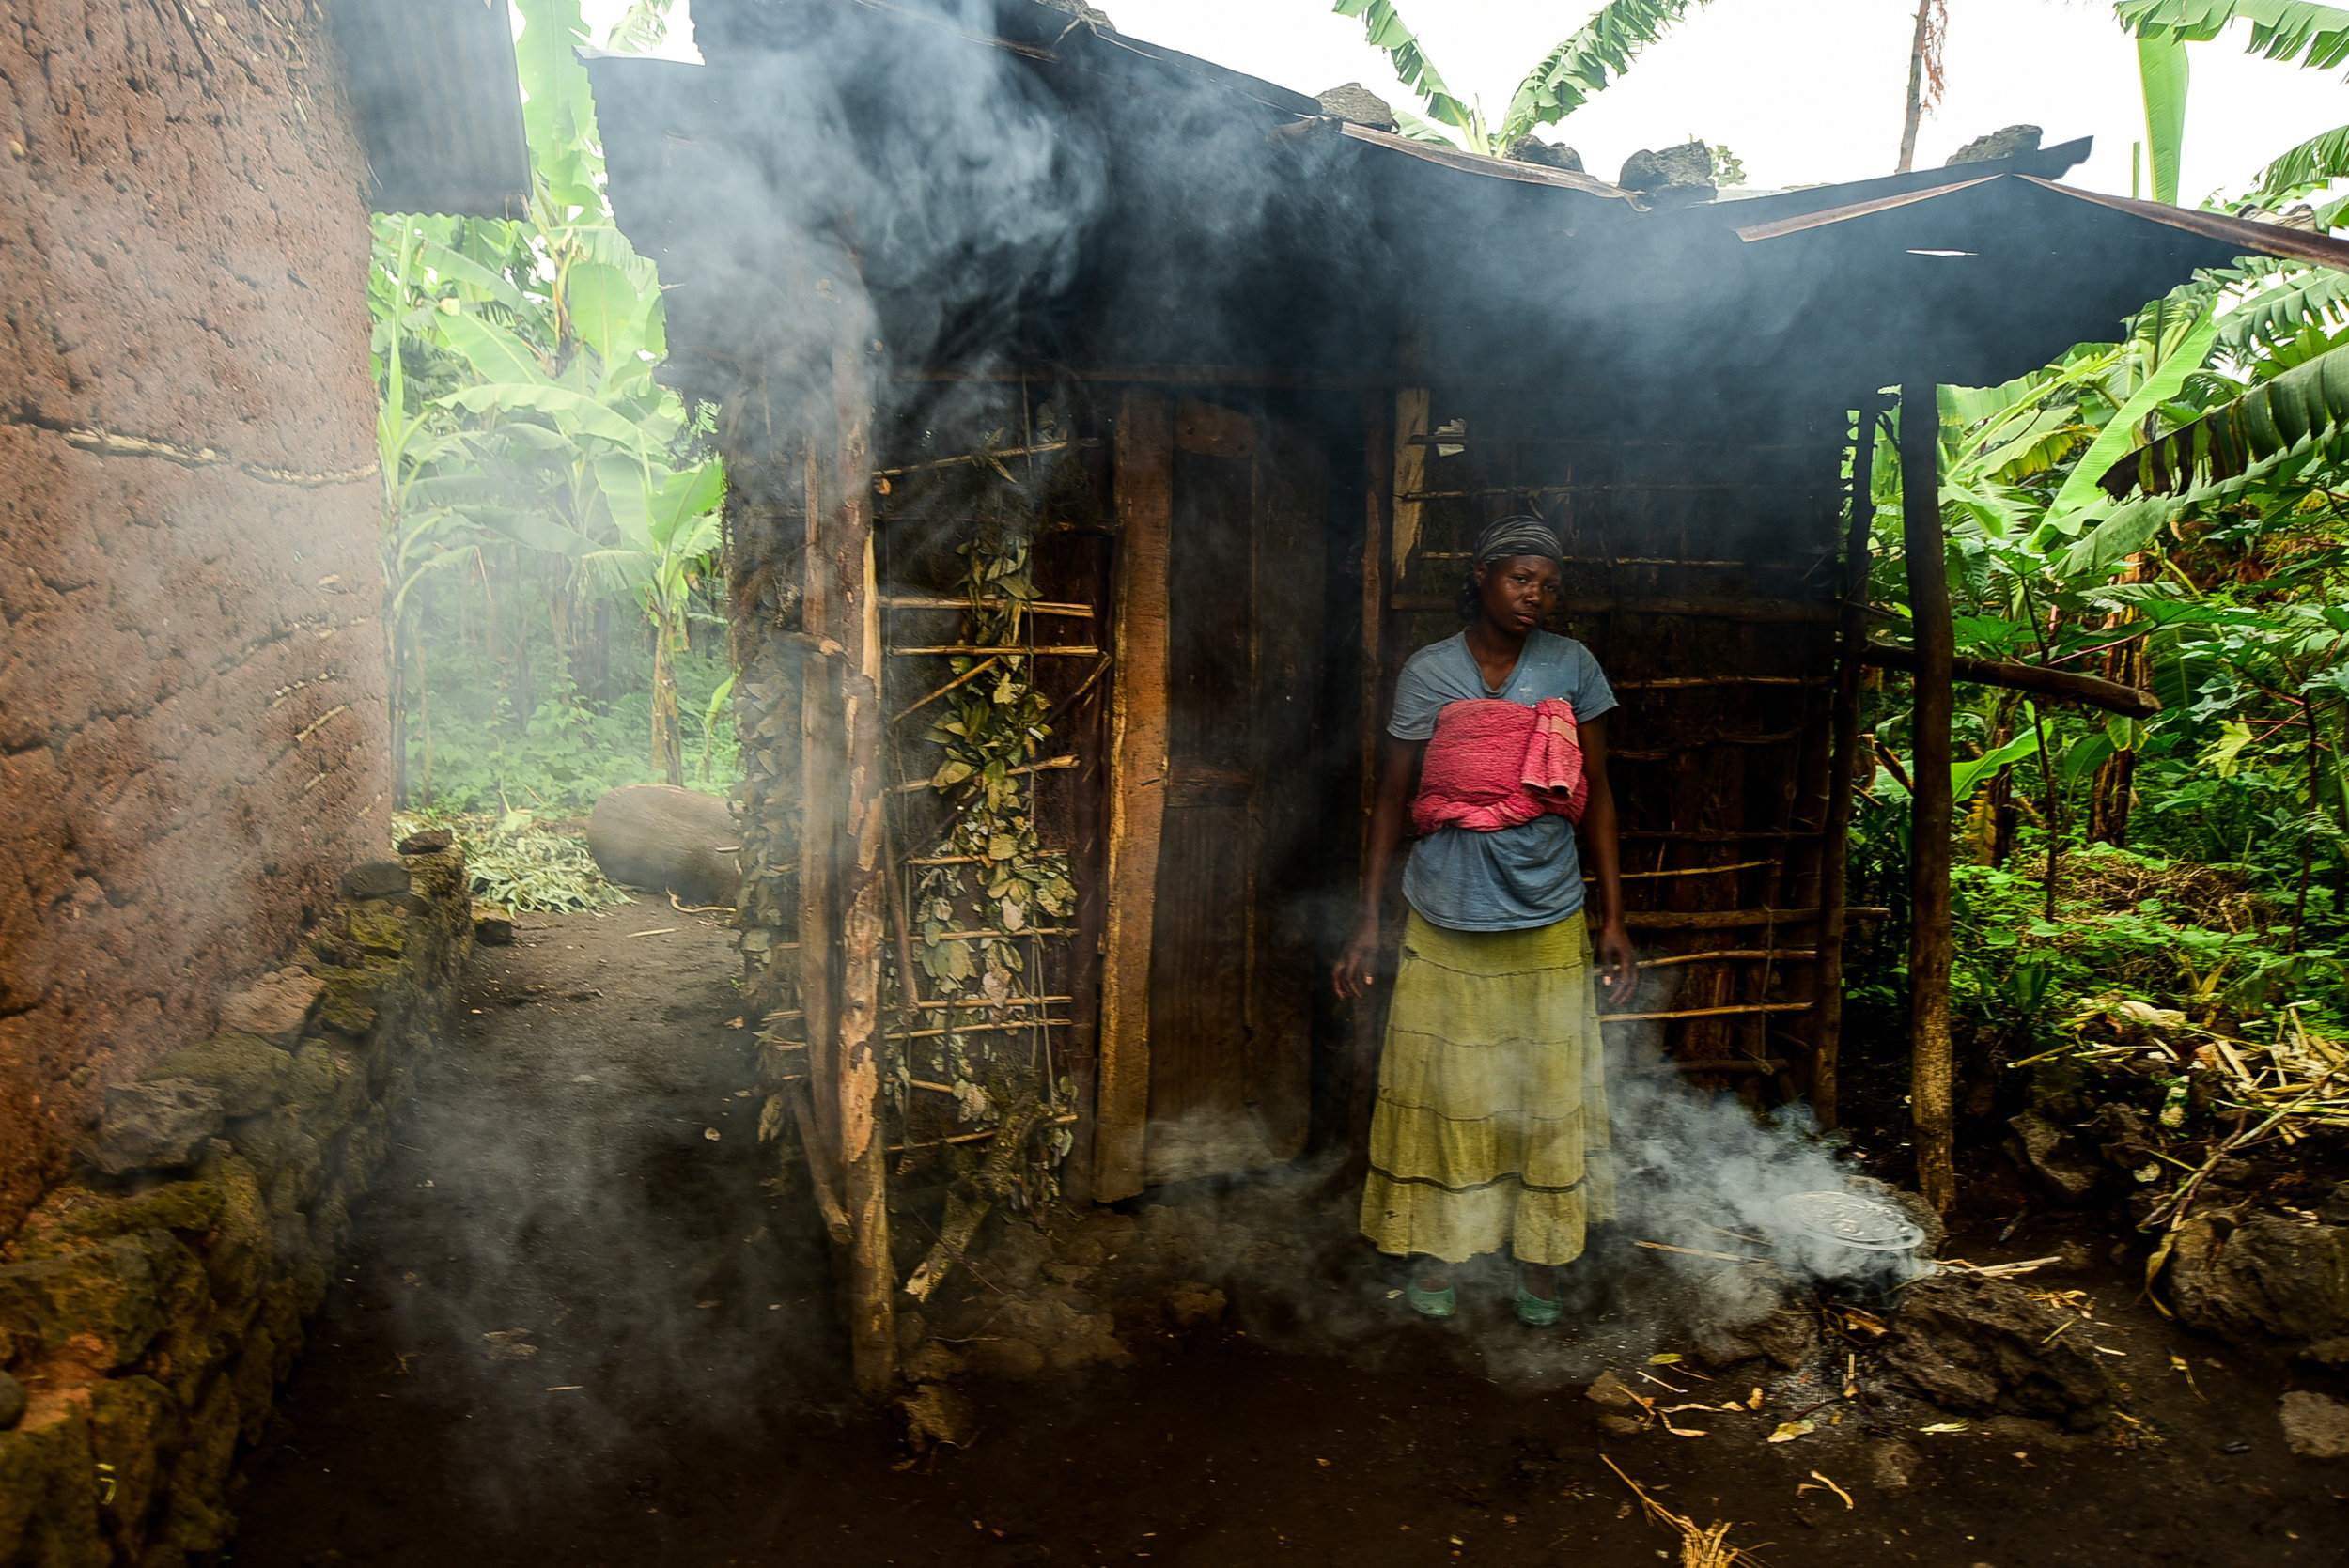 When Nyirantugane Claudine gave birth, she had to sell the iron slats she had saved up for as a roof for her new home to pay the hospital bill. Instead of living in the home of her in-laws (pictured left), she, her husband, and her daughters live in a small shack made with wood and banana leaves. Housing insecurity is a huge contributor to malnutrition. Uwiduhaye Divine and Muhawenimana Kevine are often sick from the rain that leaks through the porous roof, and visits to the health center are expensive because the twins are not registered for health insurance. Their medical bills are such that Claudine often cannot afford food.